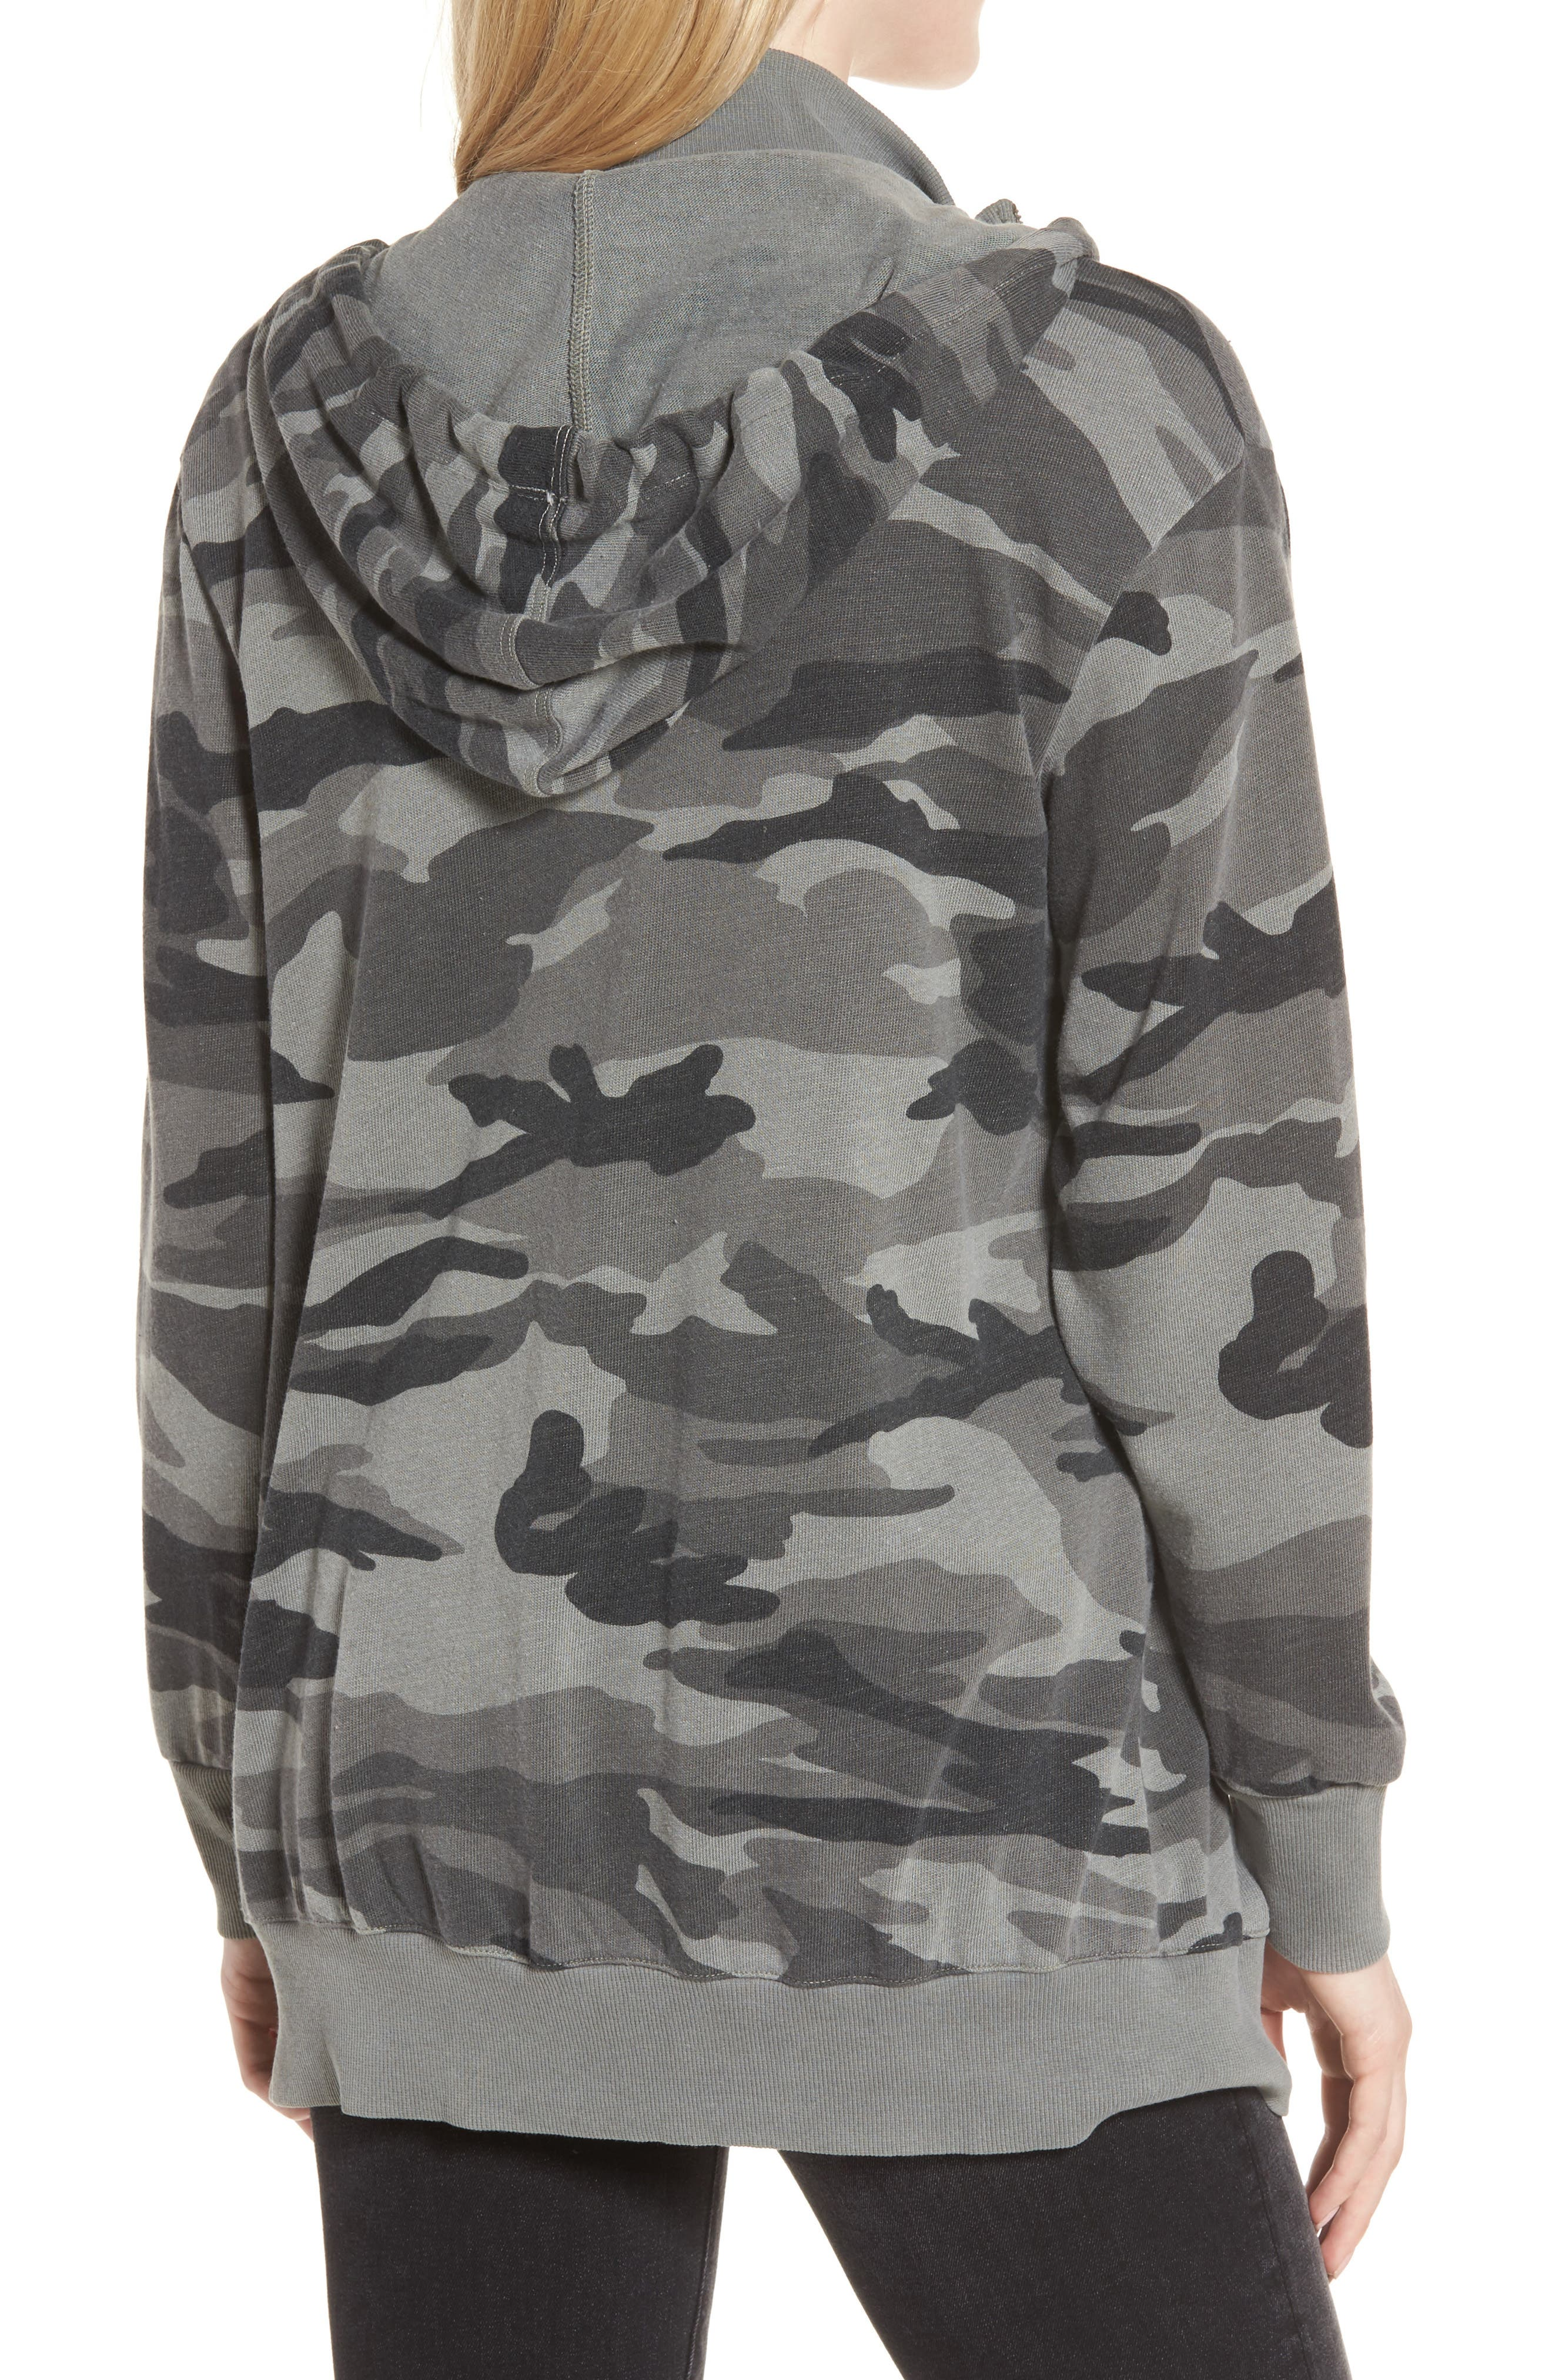 French Terry Camo Sweatshirt,                             Alternate thumbnail 2, color,                             301